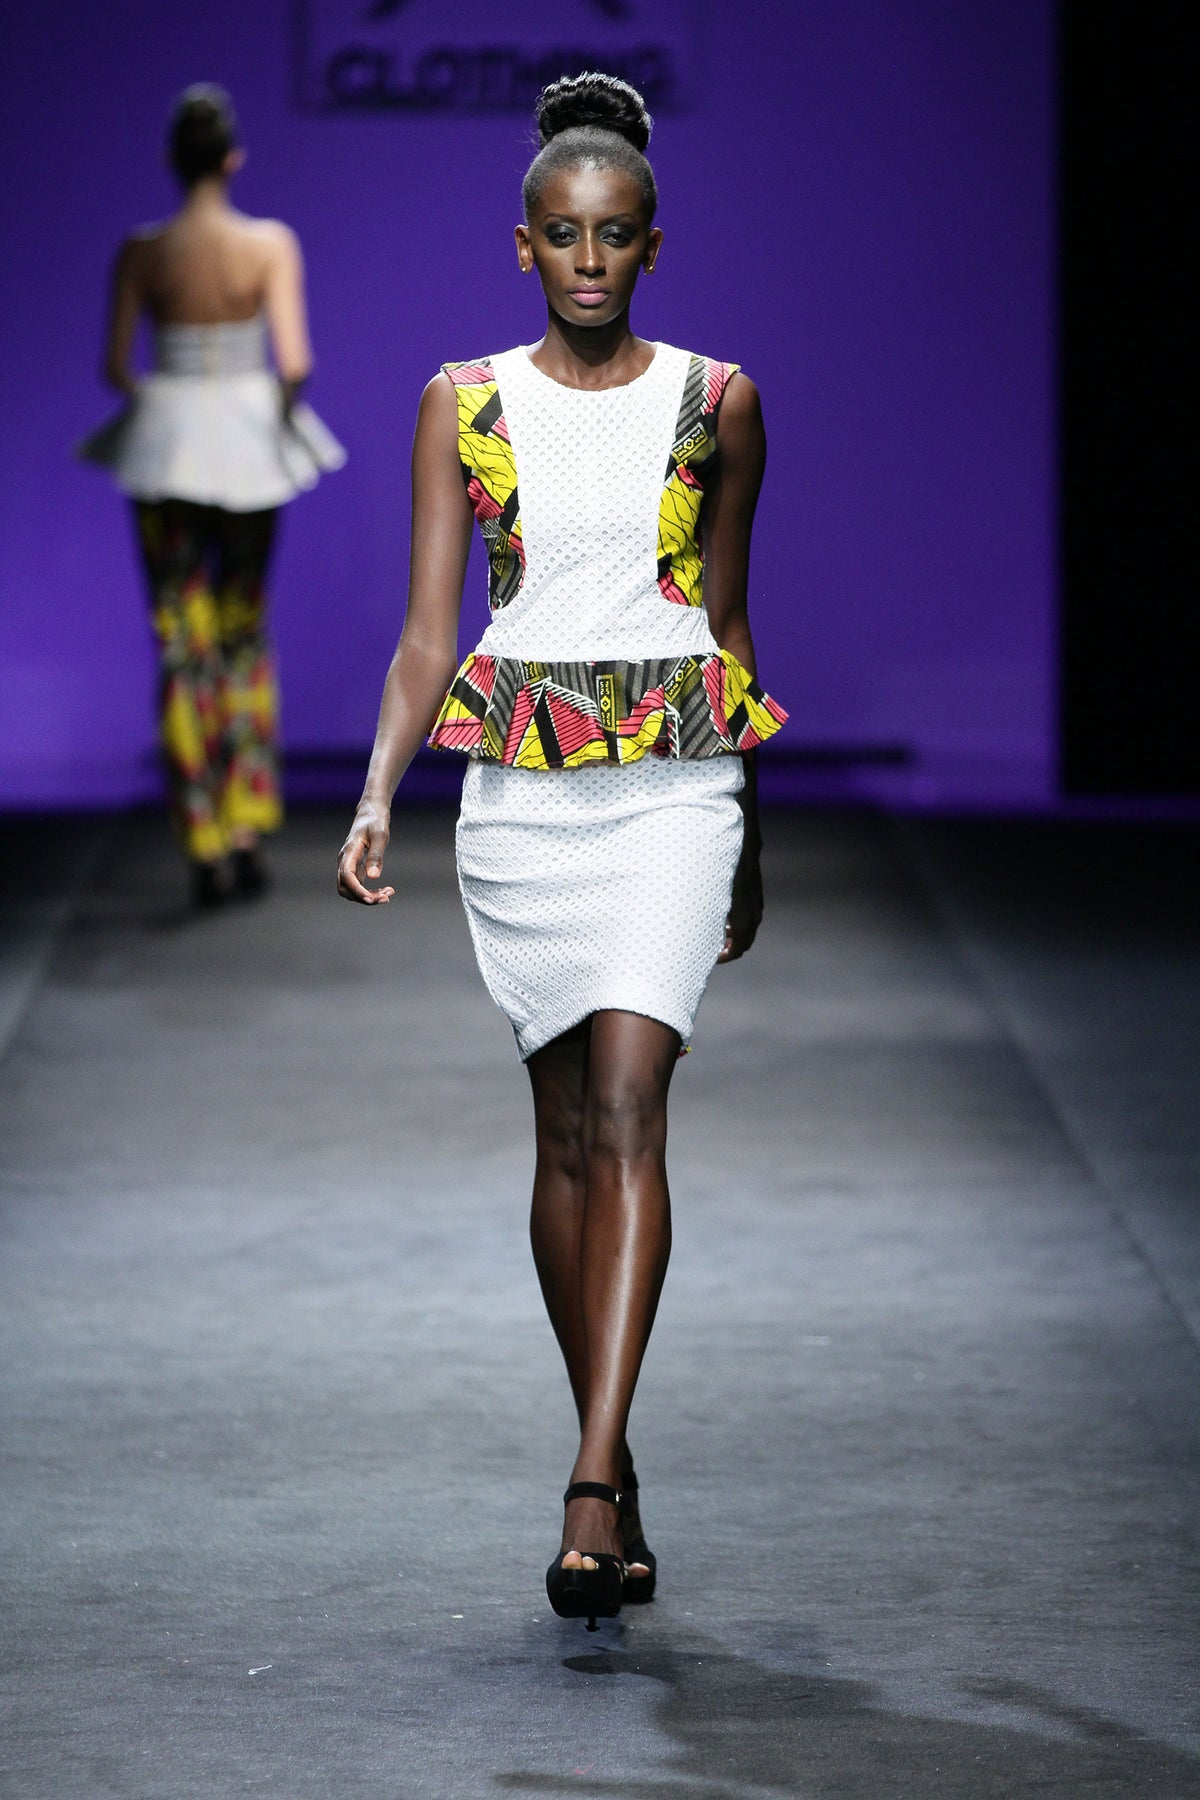 Mercedes Benz Africa Fashion Week- Johannesburg